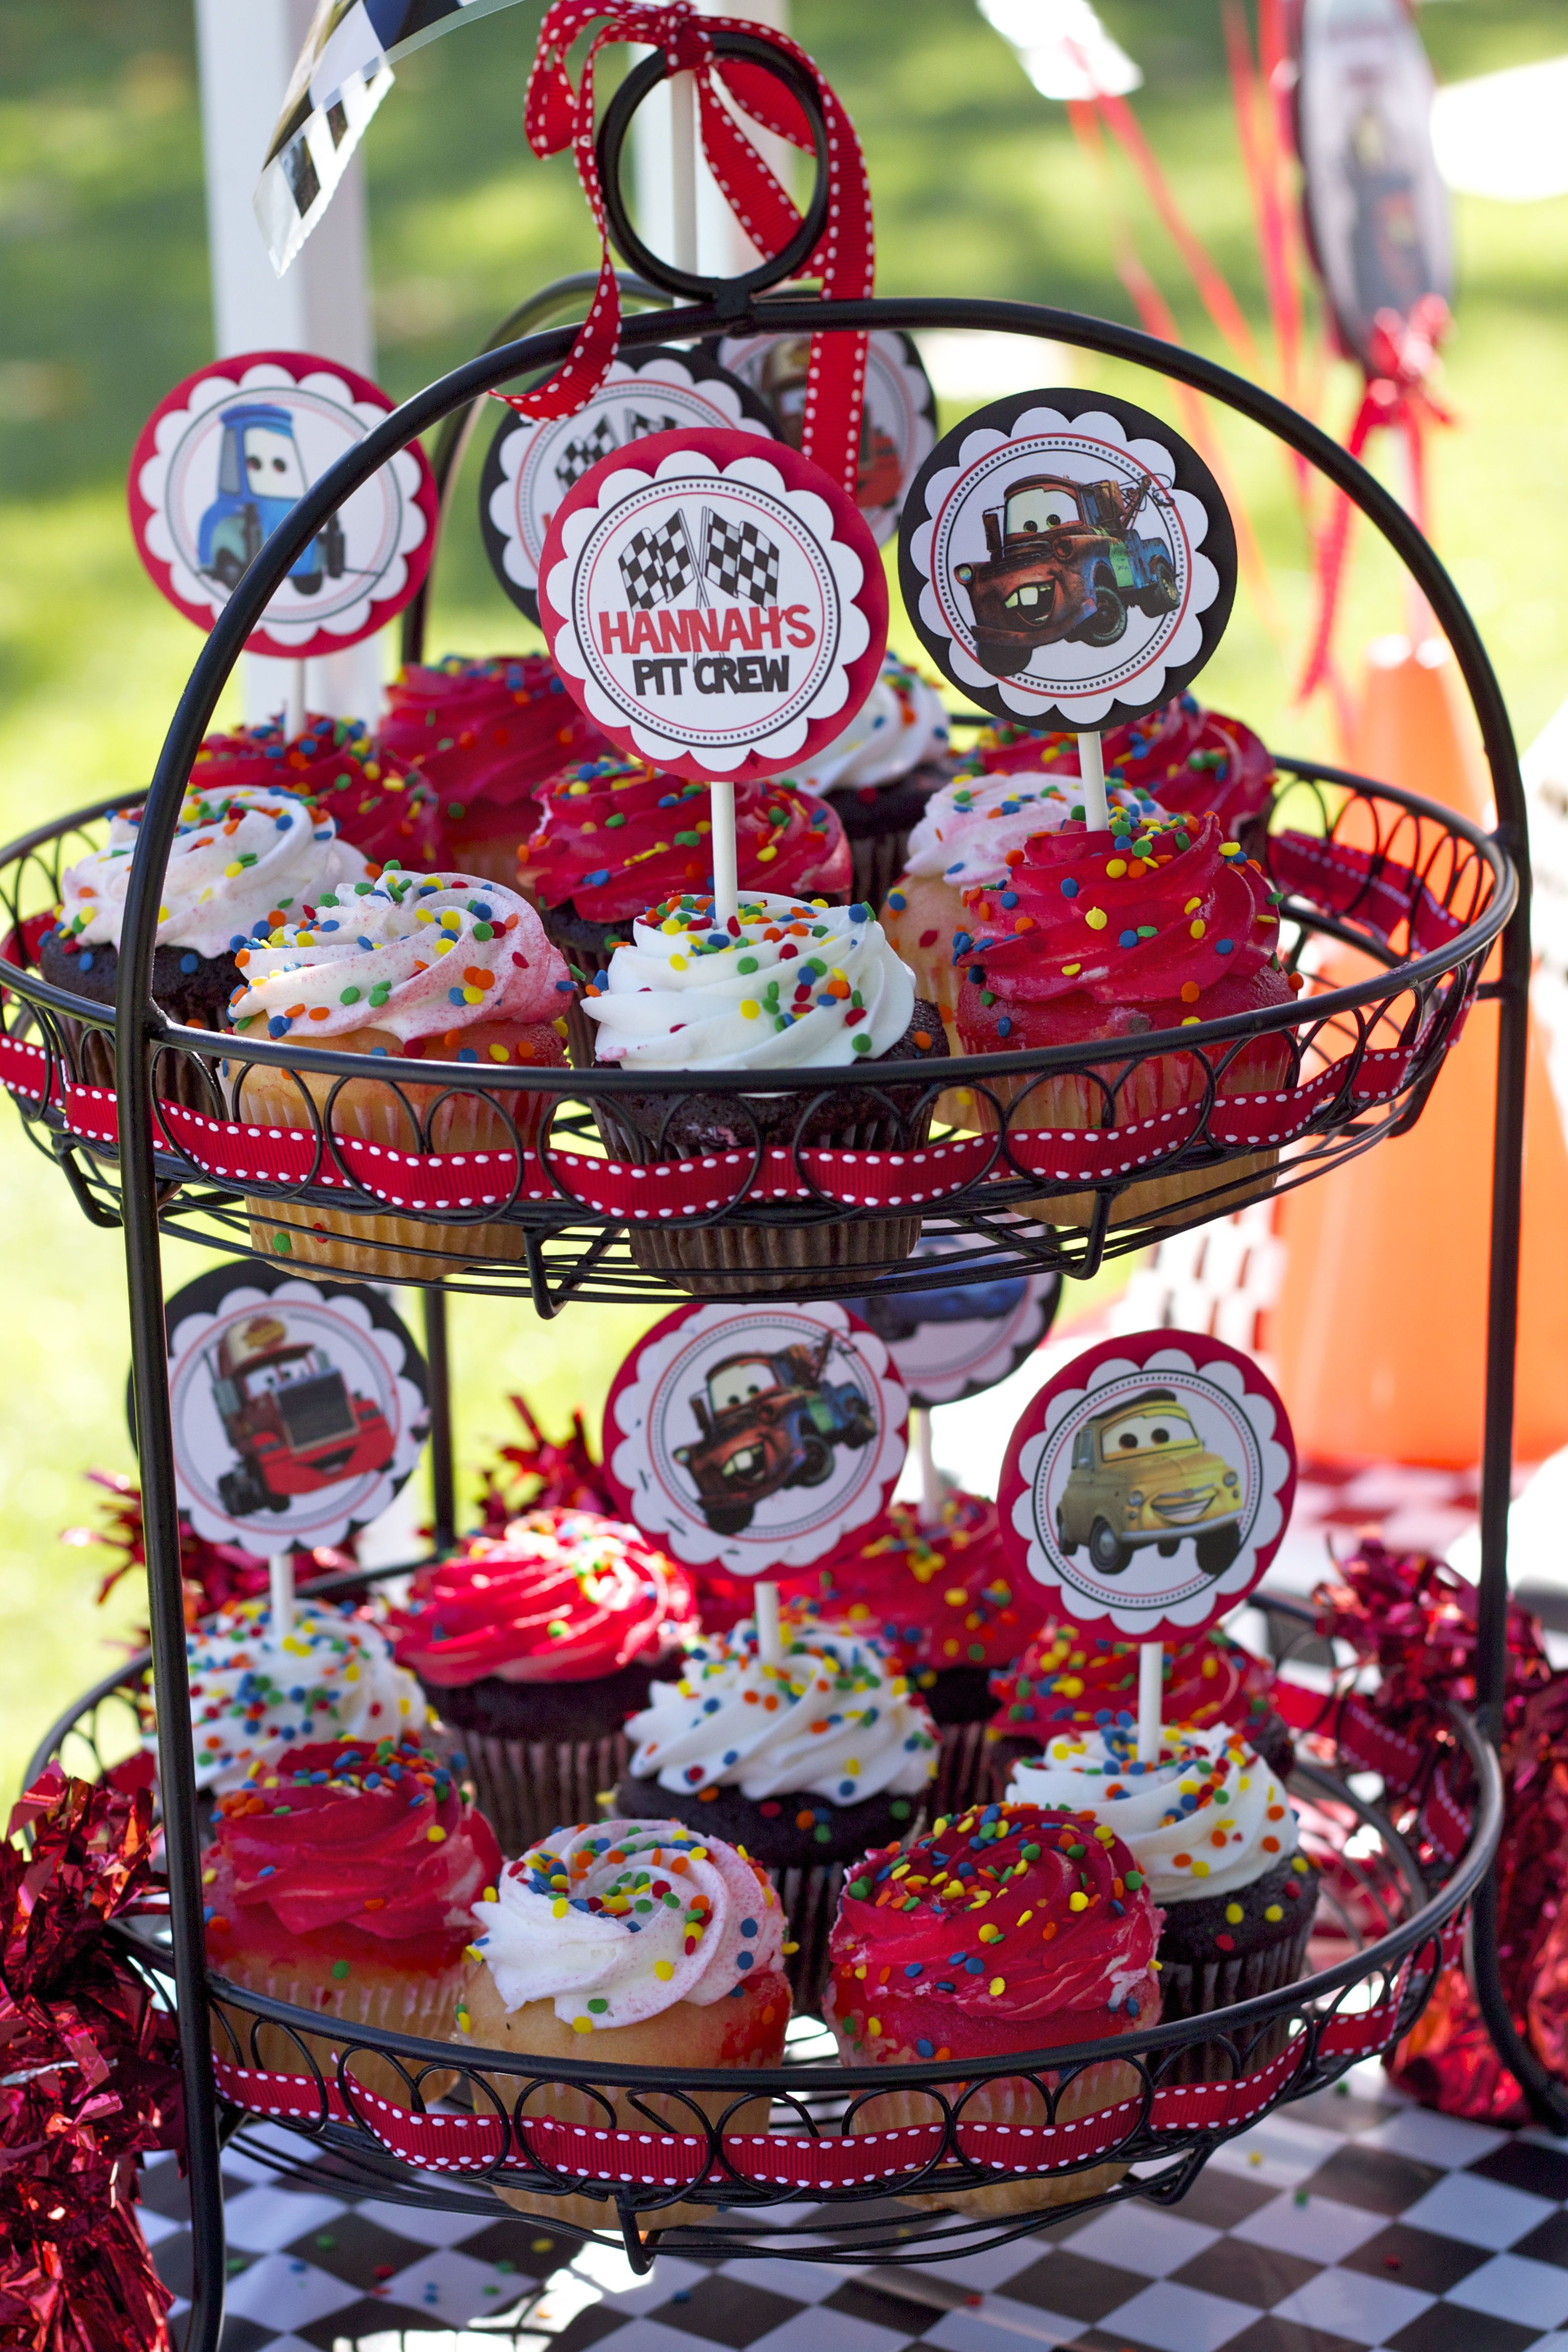 Pleasing Cupcakes From Stater Bros Cheap 20 For 3 Dozen Topped With Funny Birthday Cards Online Drosicarndamsfinfo